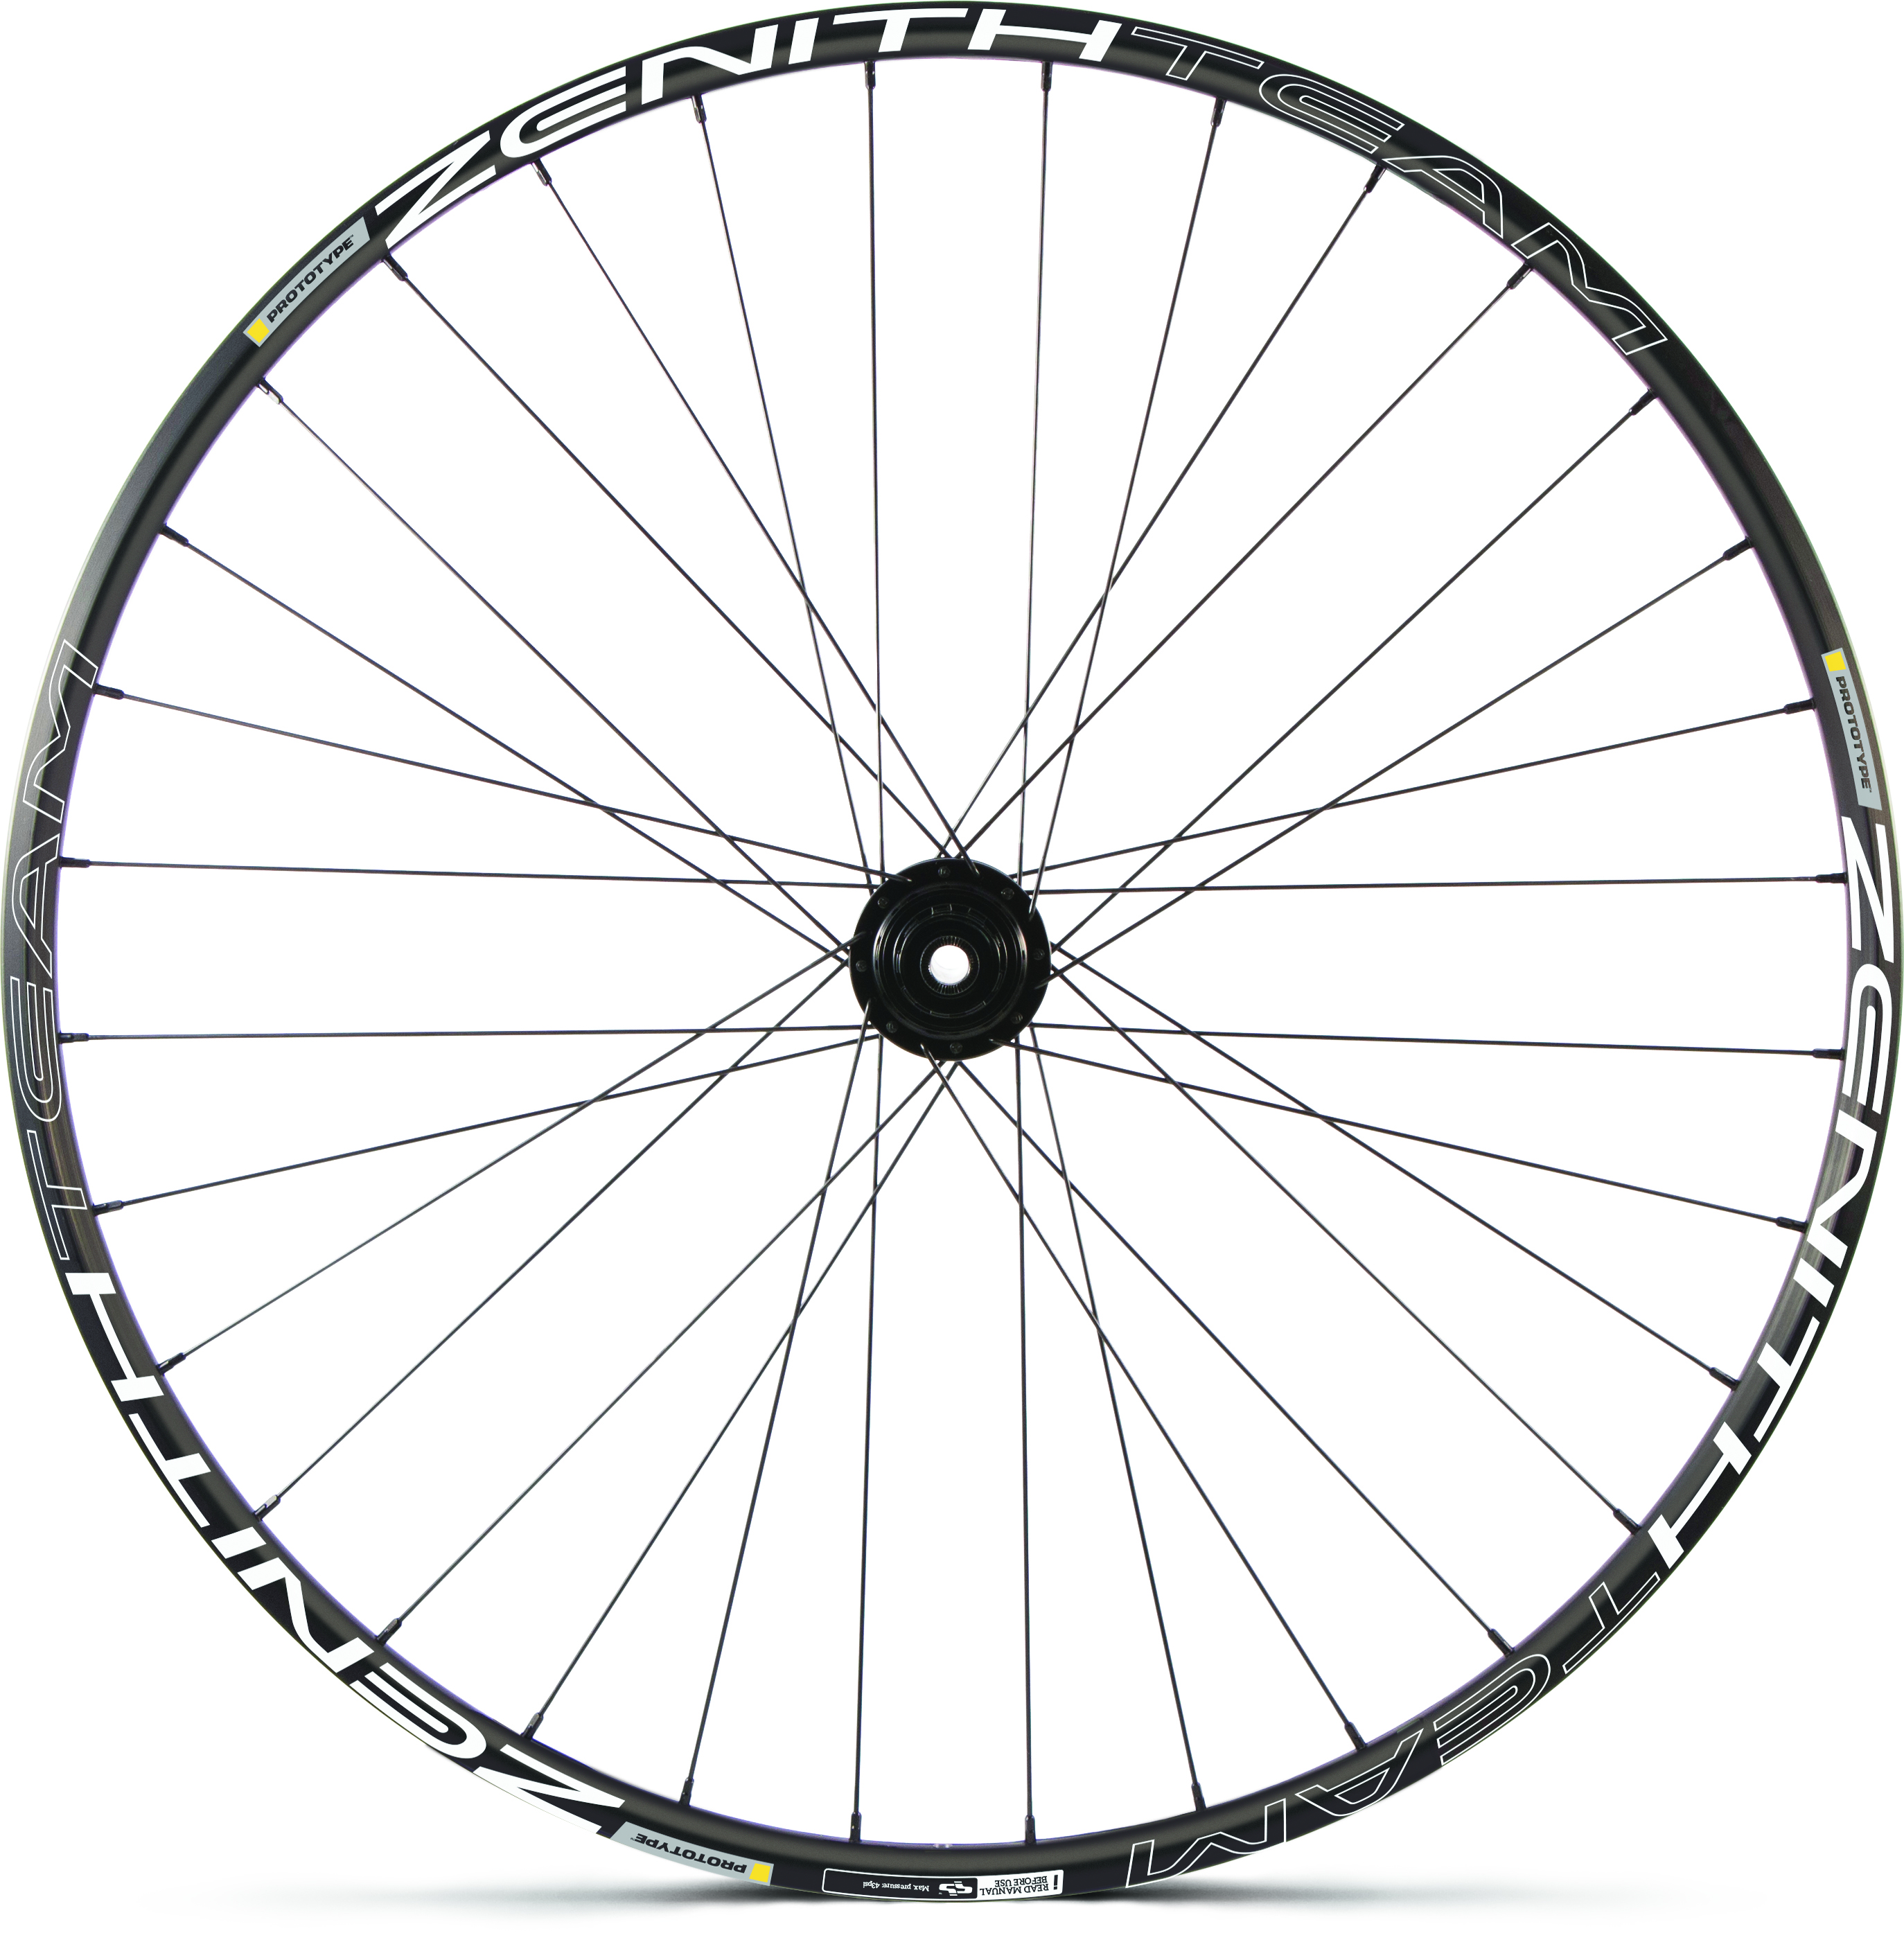 MTB Wheel Zenith Team 29r (Lefty)